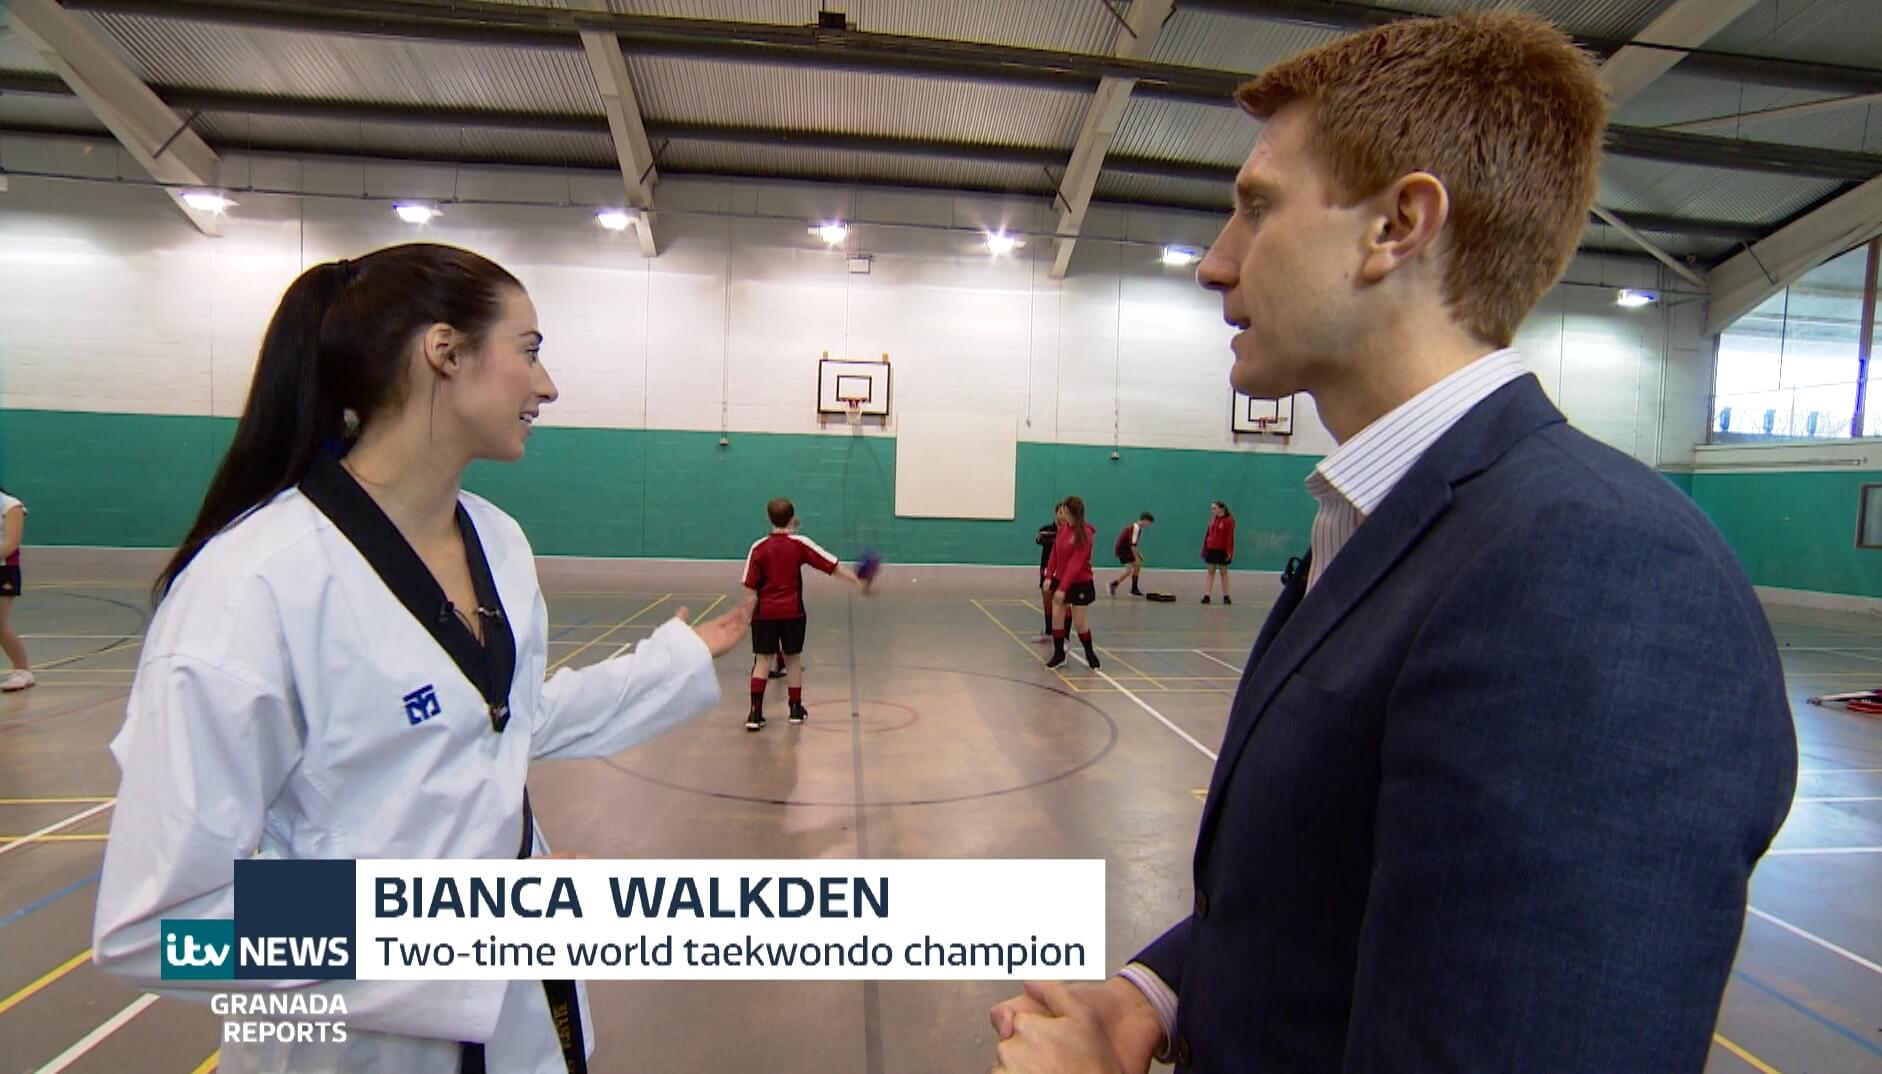 ITV News Granada Reports - Bianca Walkden